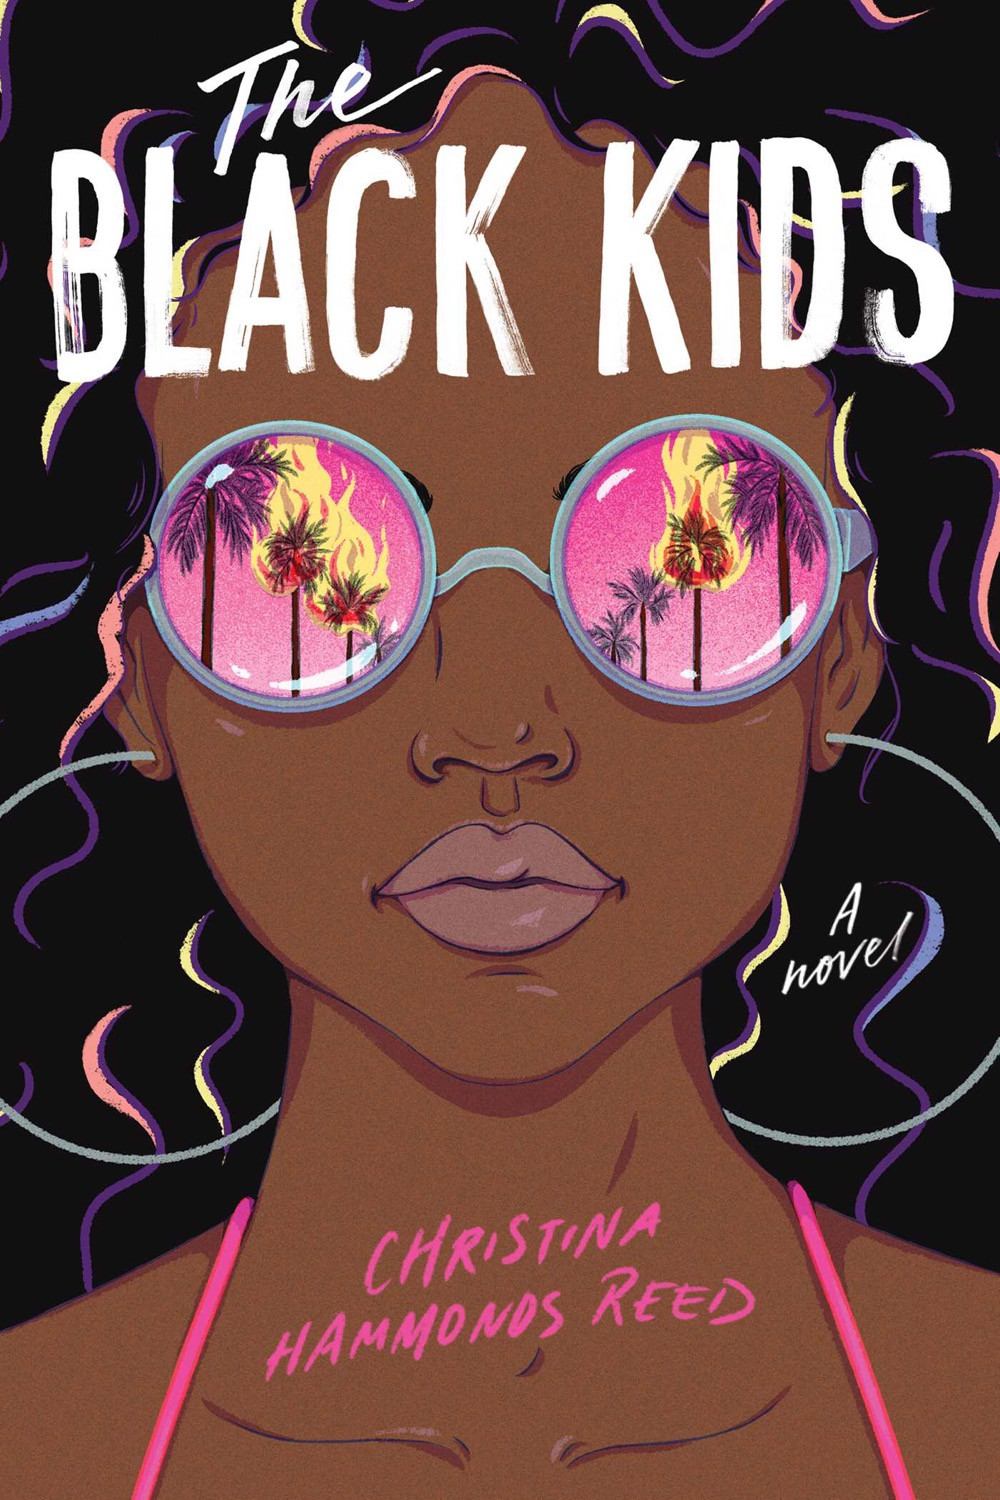 The Black Kids by Christina Hammonds Reed - Book Cover | 13 YA Books Out In August 2020